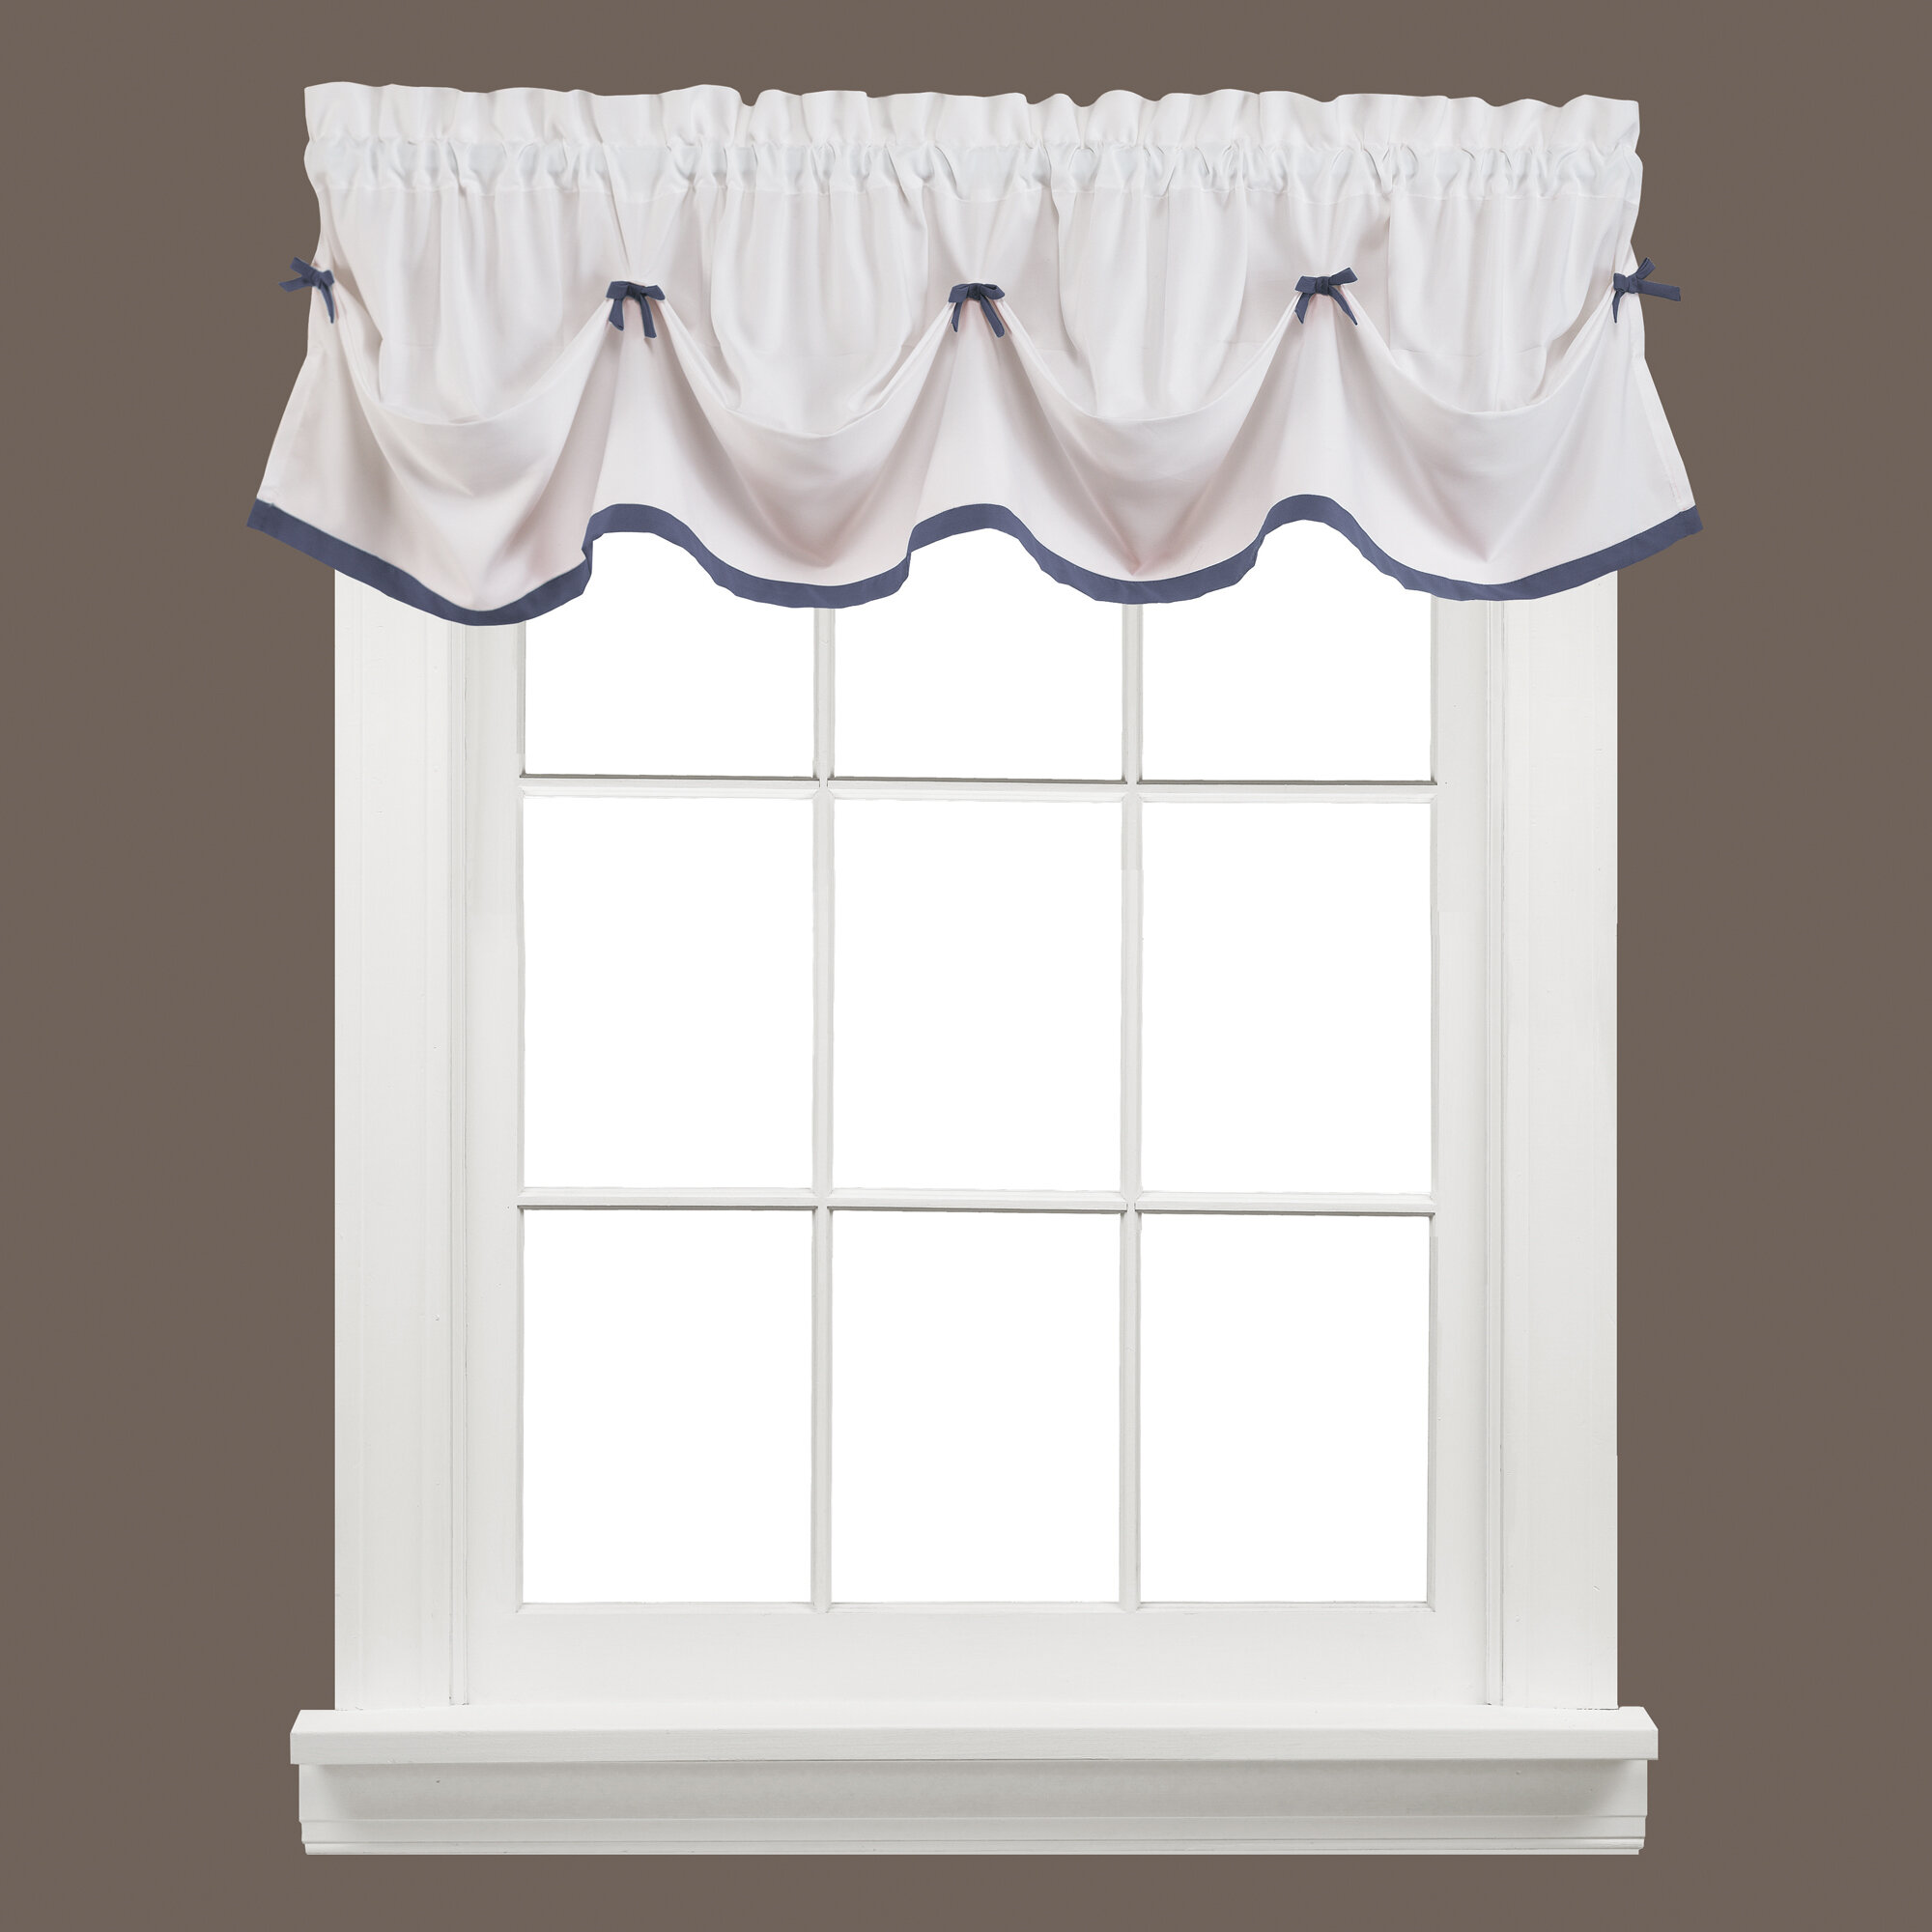 reviews ortensia curtain wayfair pdp windows for interiors valance linen arlo willa window ca valances treatments cornice